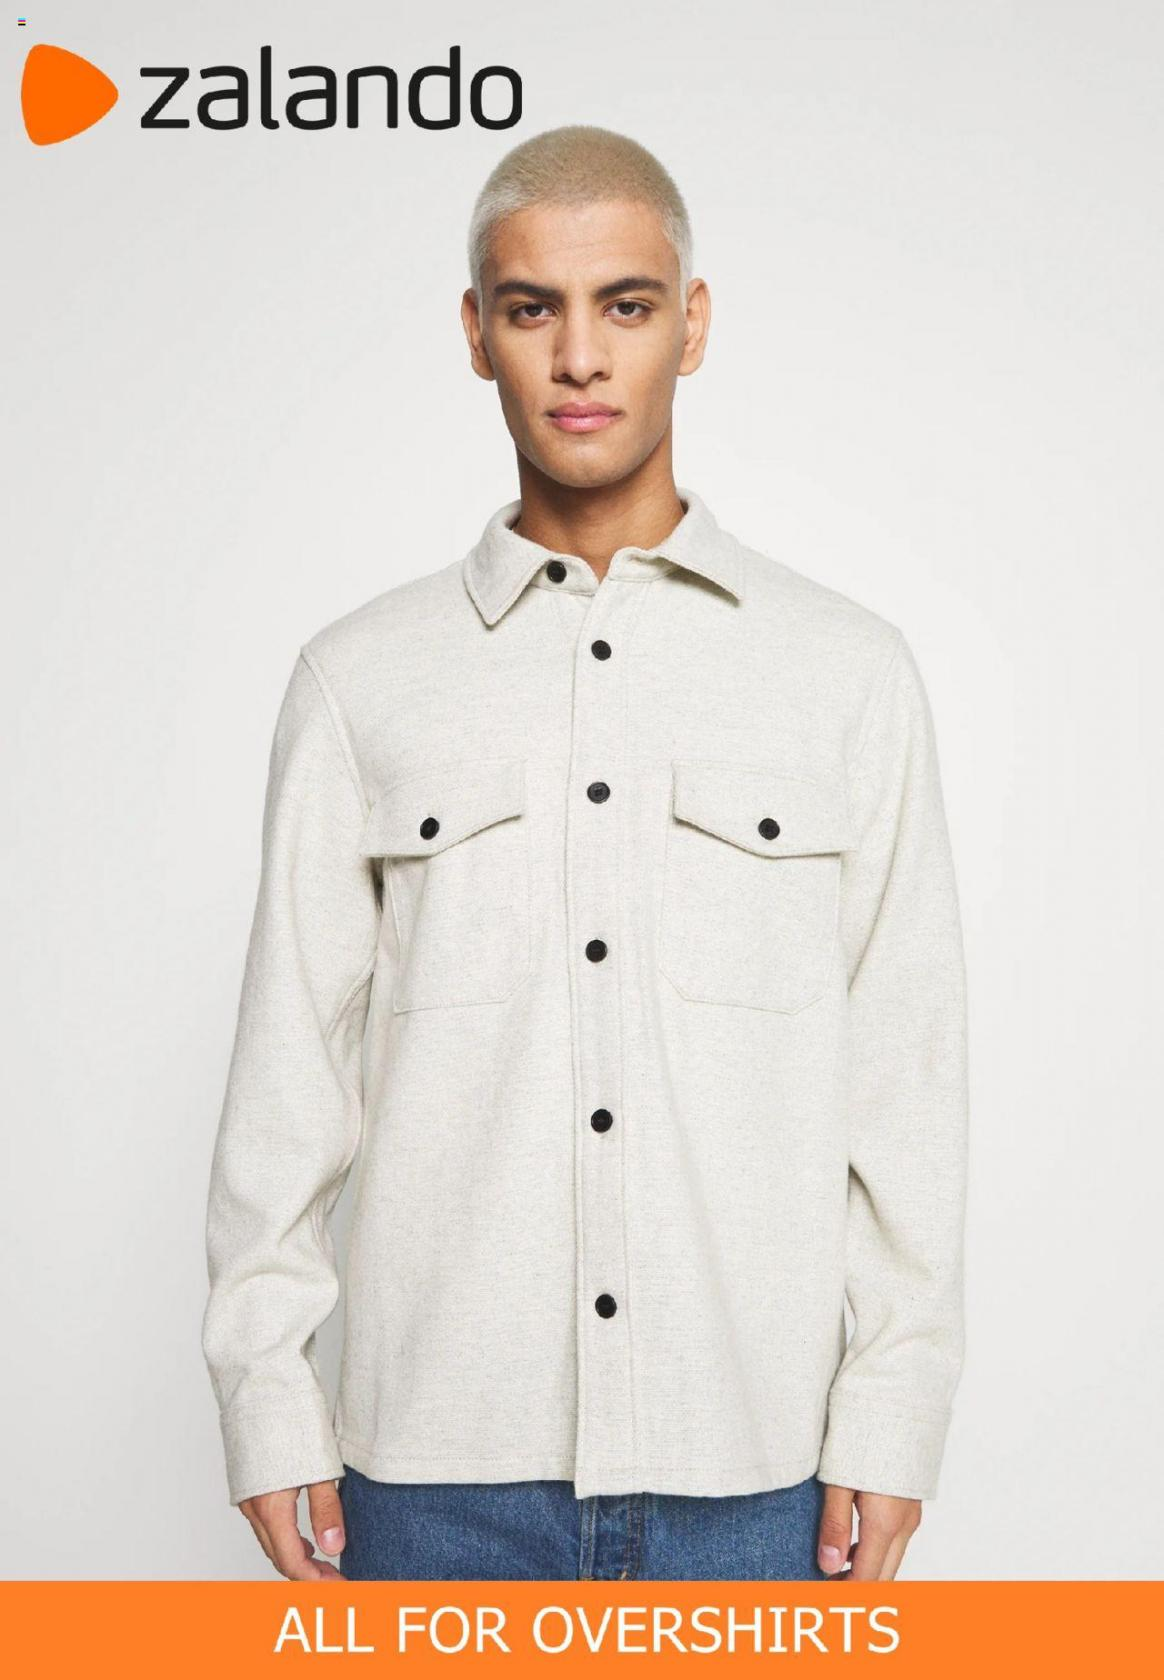 Zalando - All Fo Overshirt - #0